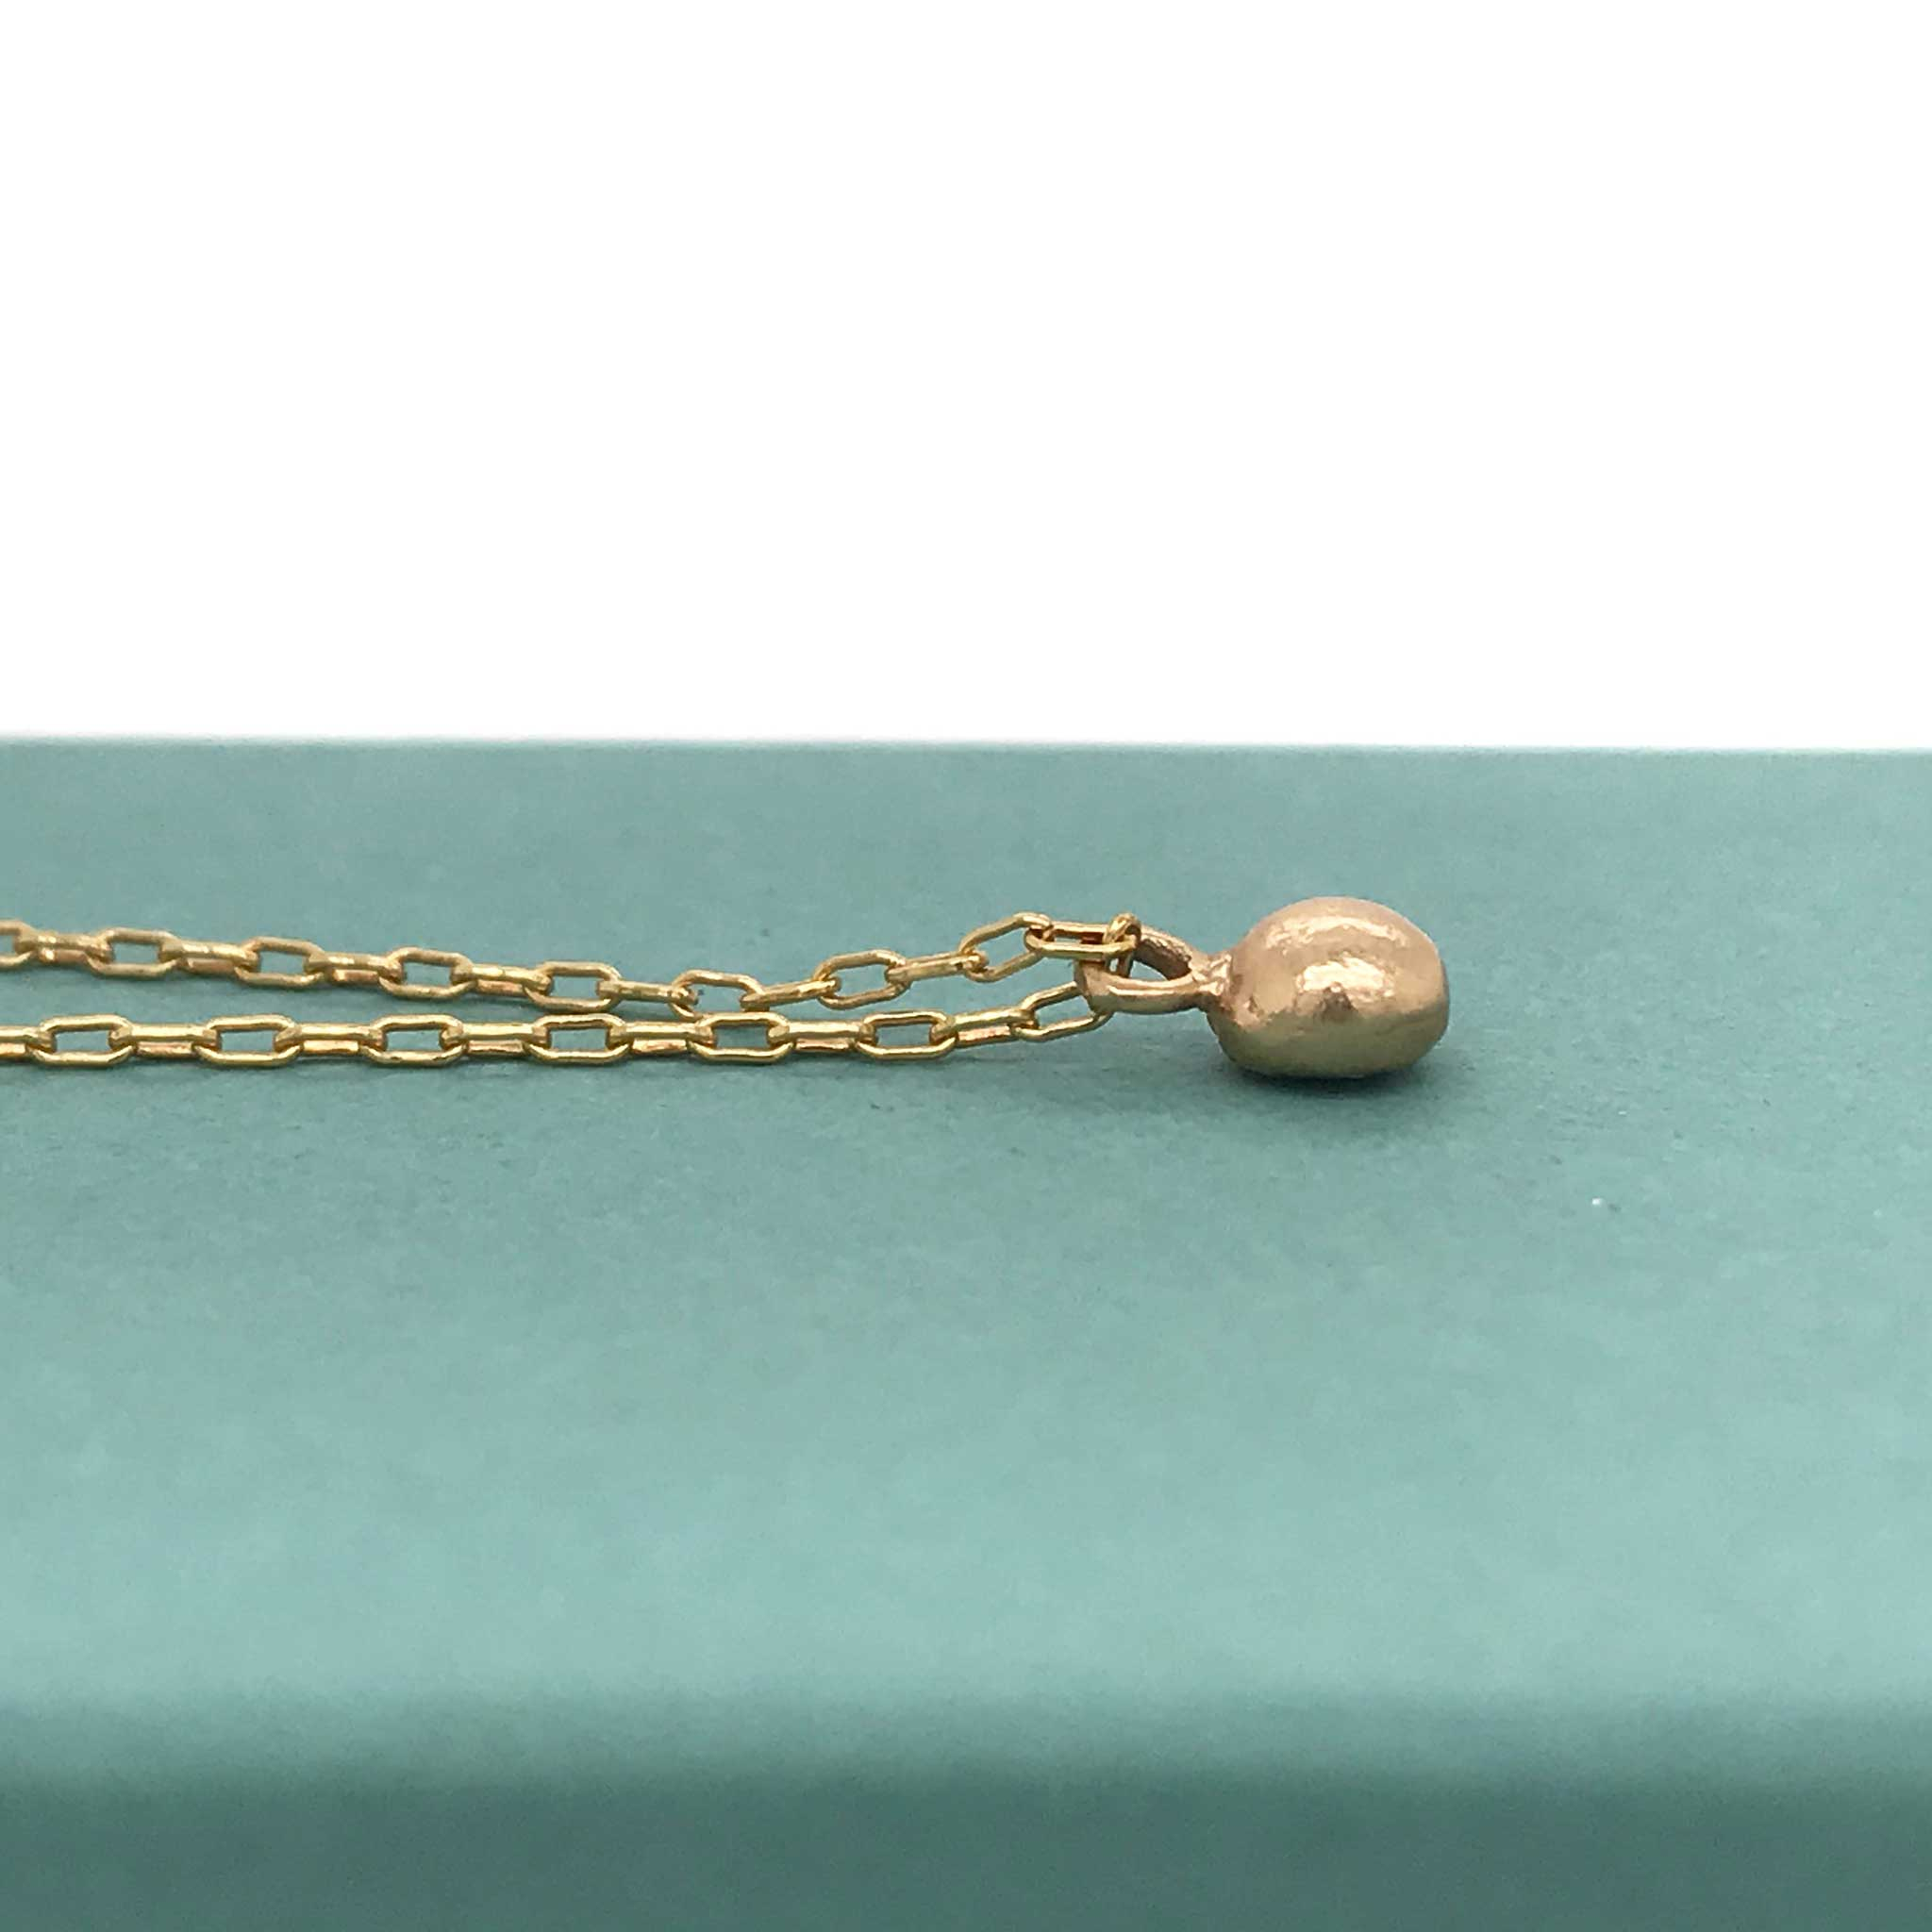 solid gold pebble charm necklace kriket broadhurst jewelry Sydney